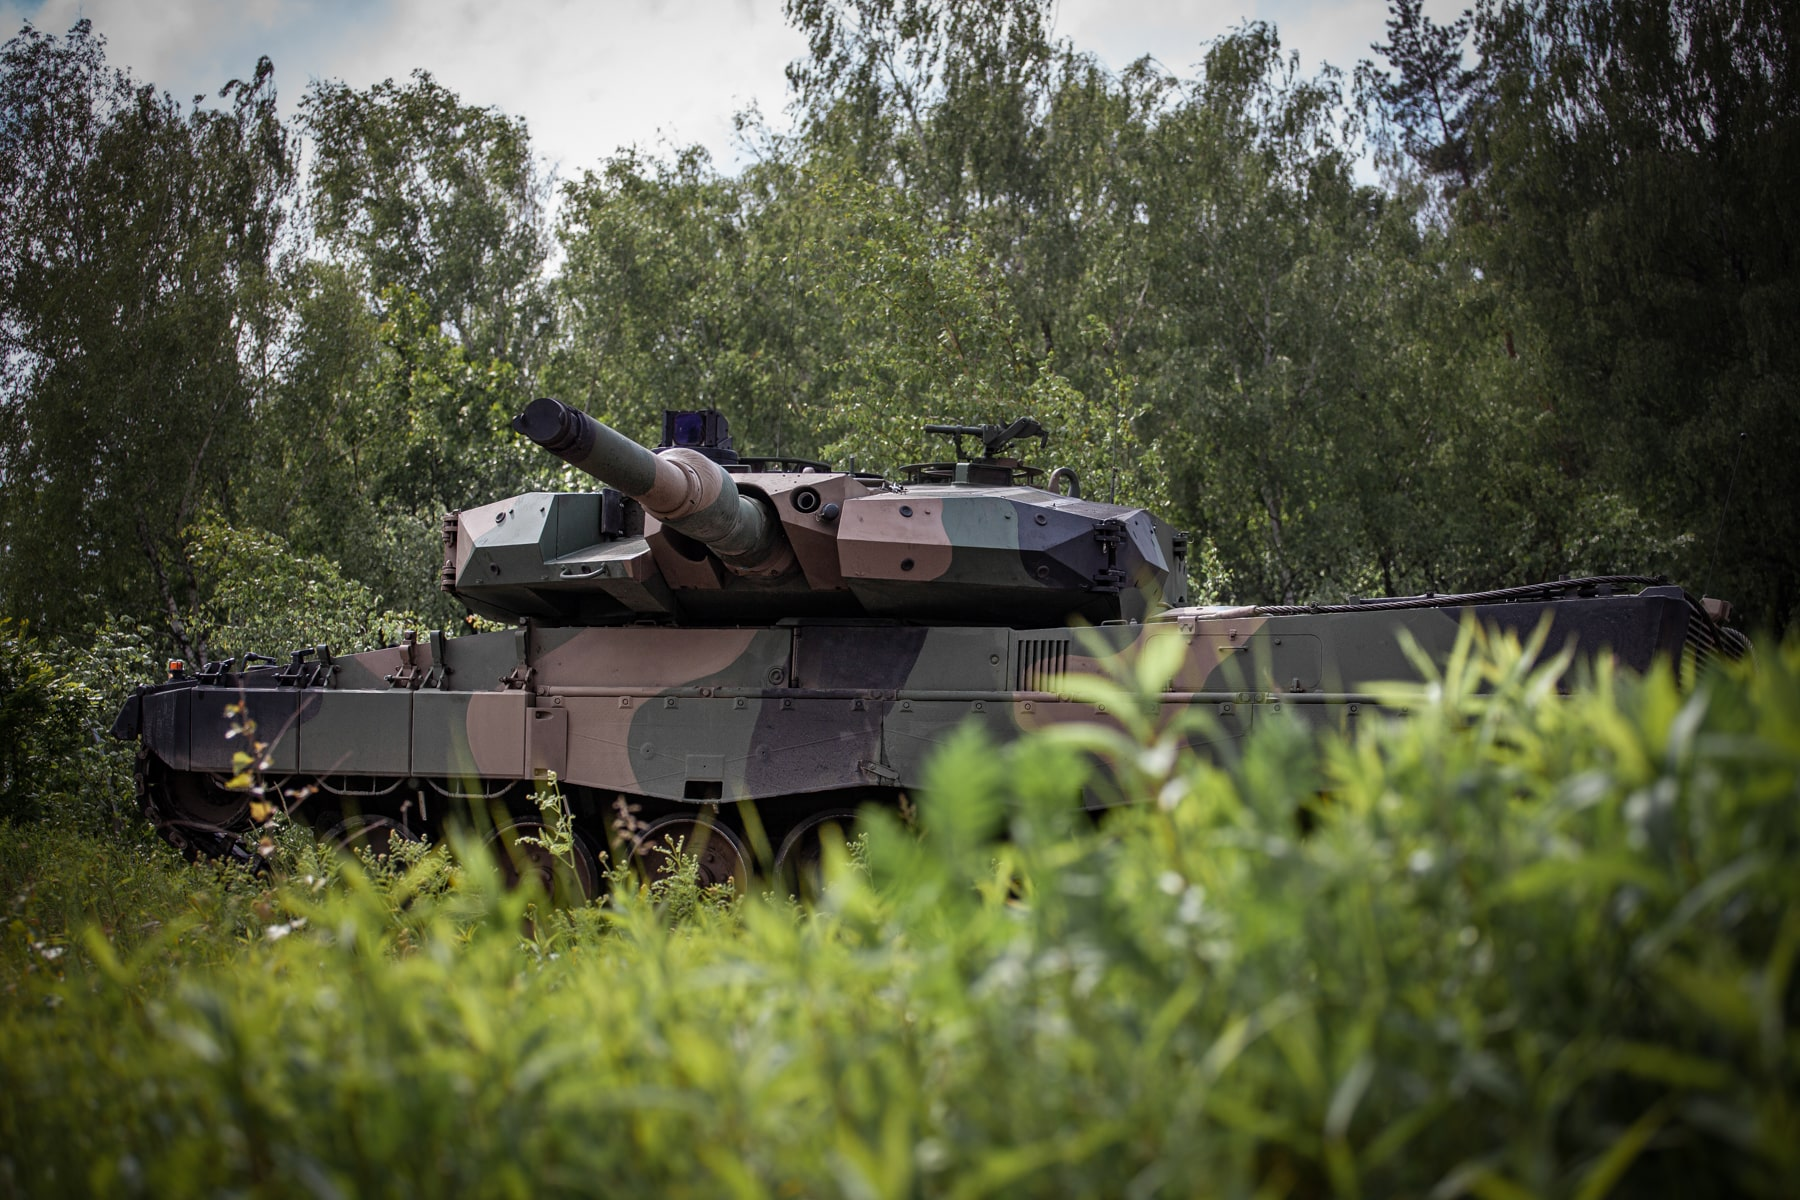 Polish Army Upgraded Leopard 2PL Main Battle Tanks